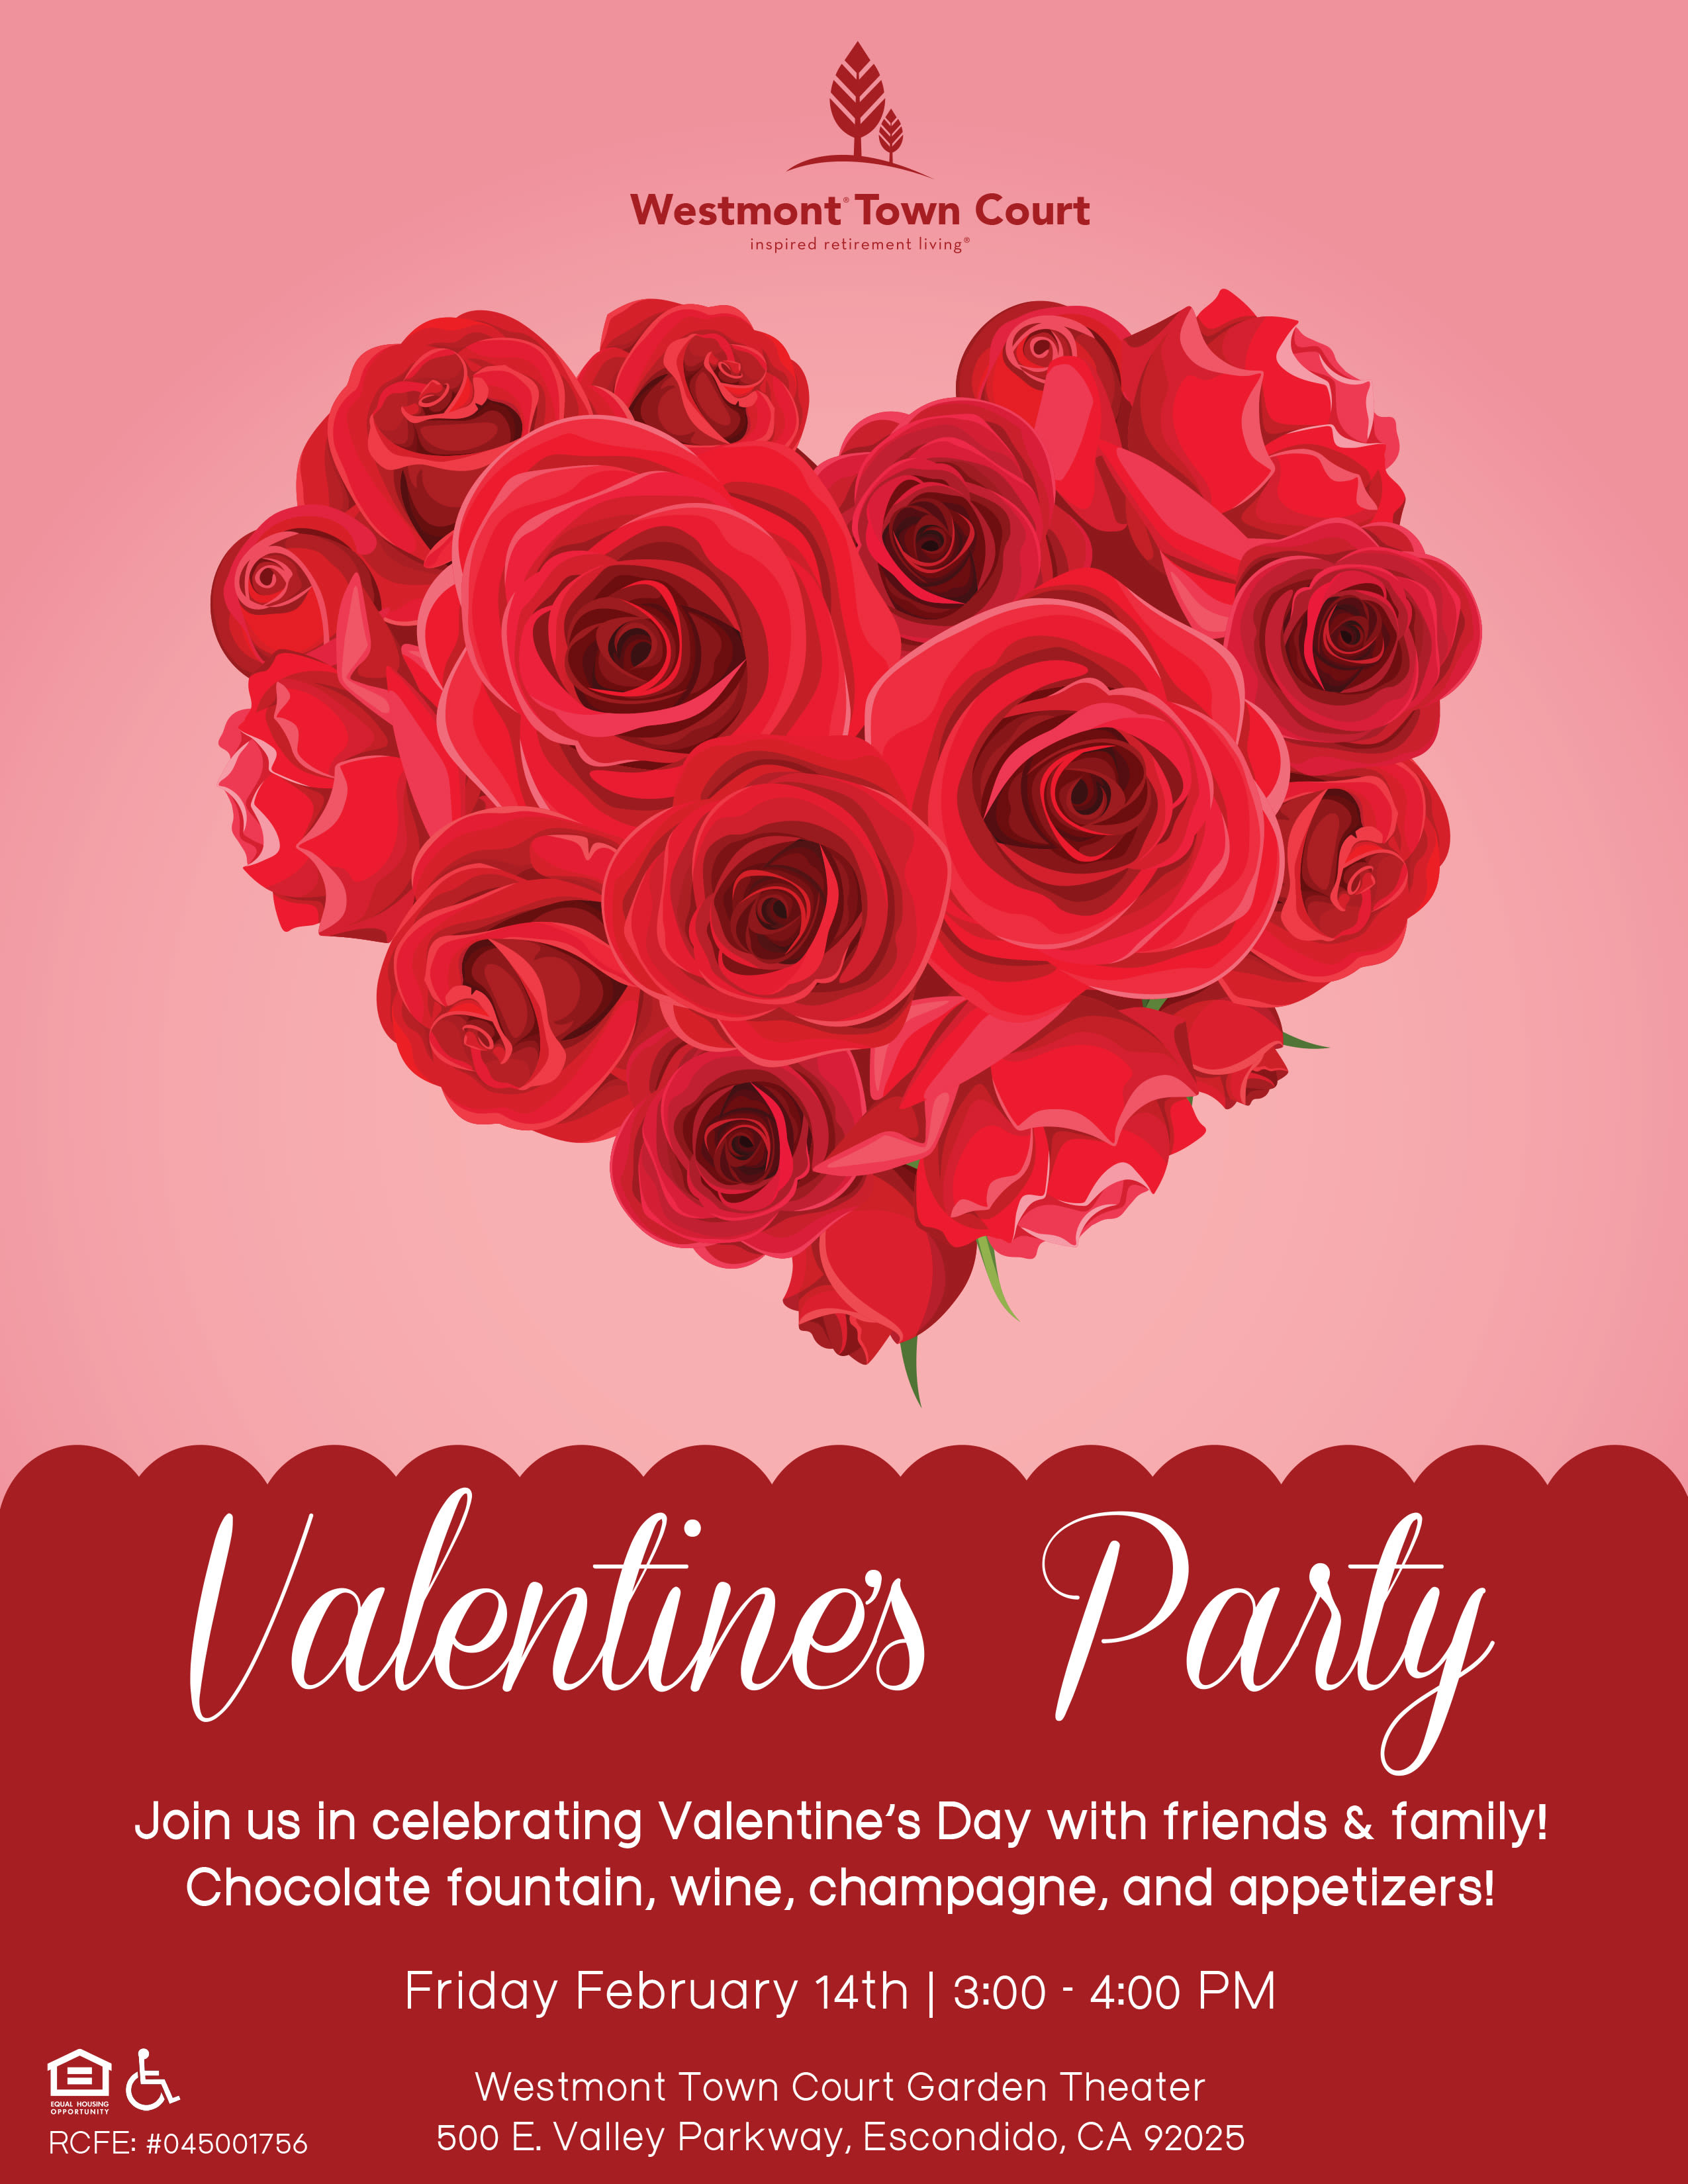 Westmont of Town Court Valentine's Party